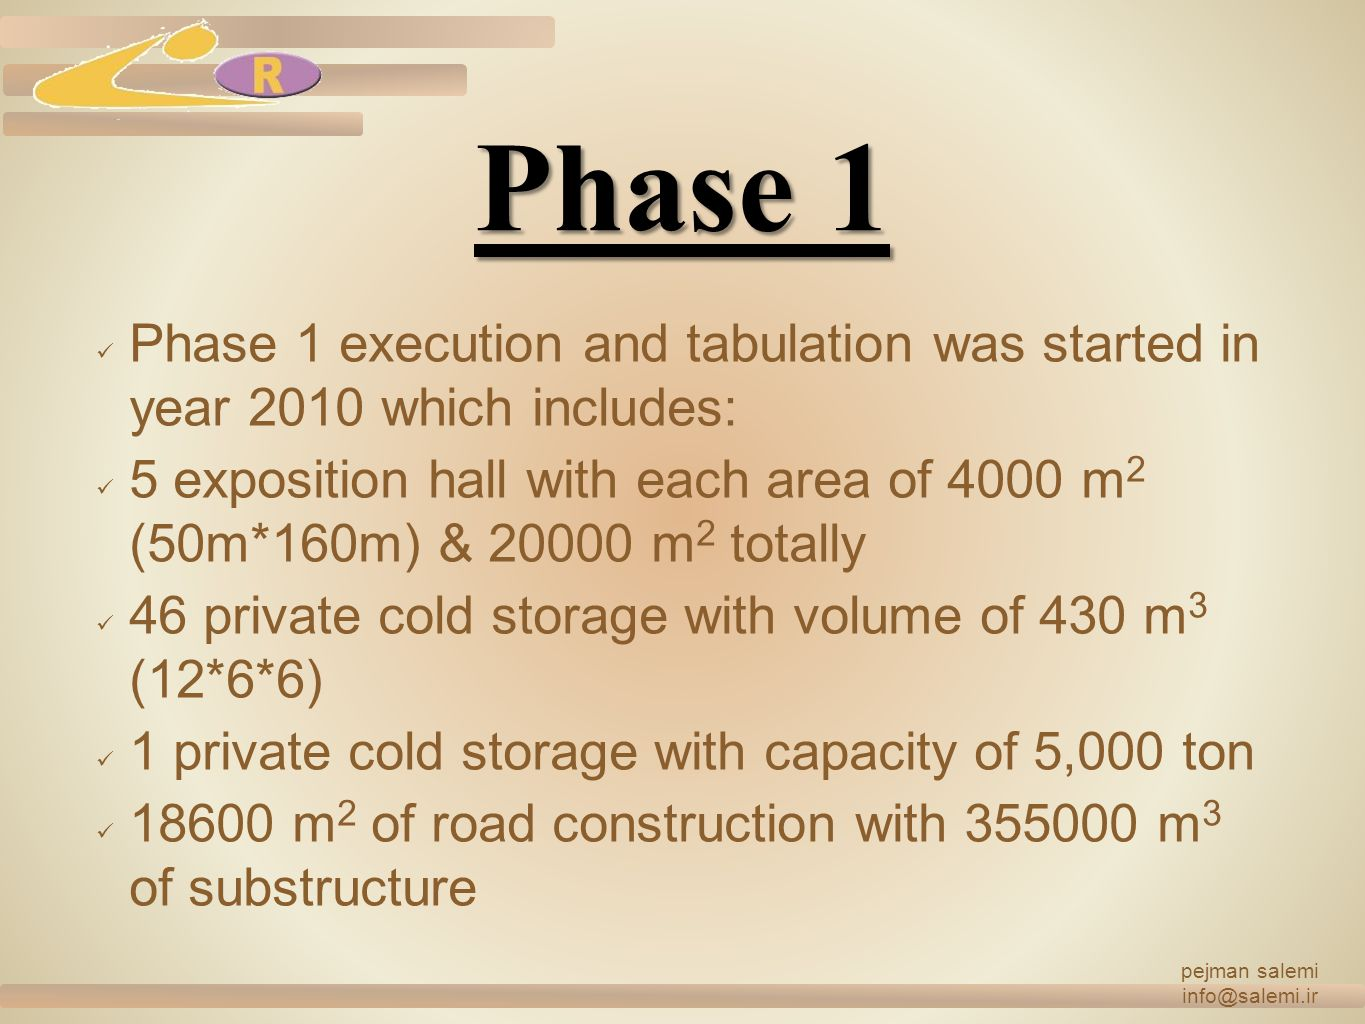 pejman salemi info@salemi.ir. Phase 1. Phase 1 execution and tabulation was started in year 2010 which includes: